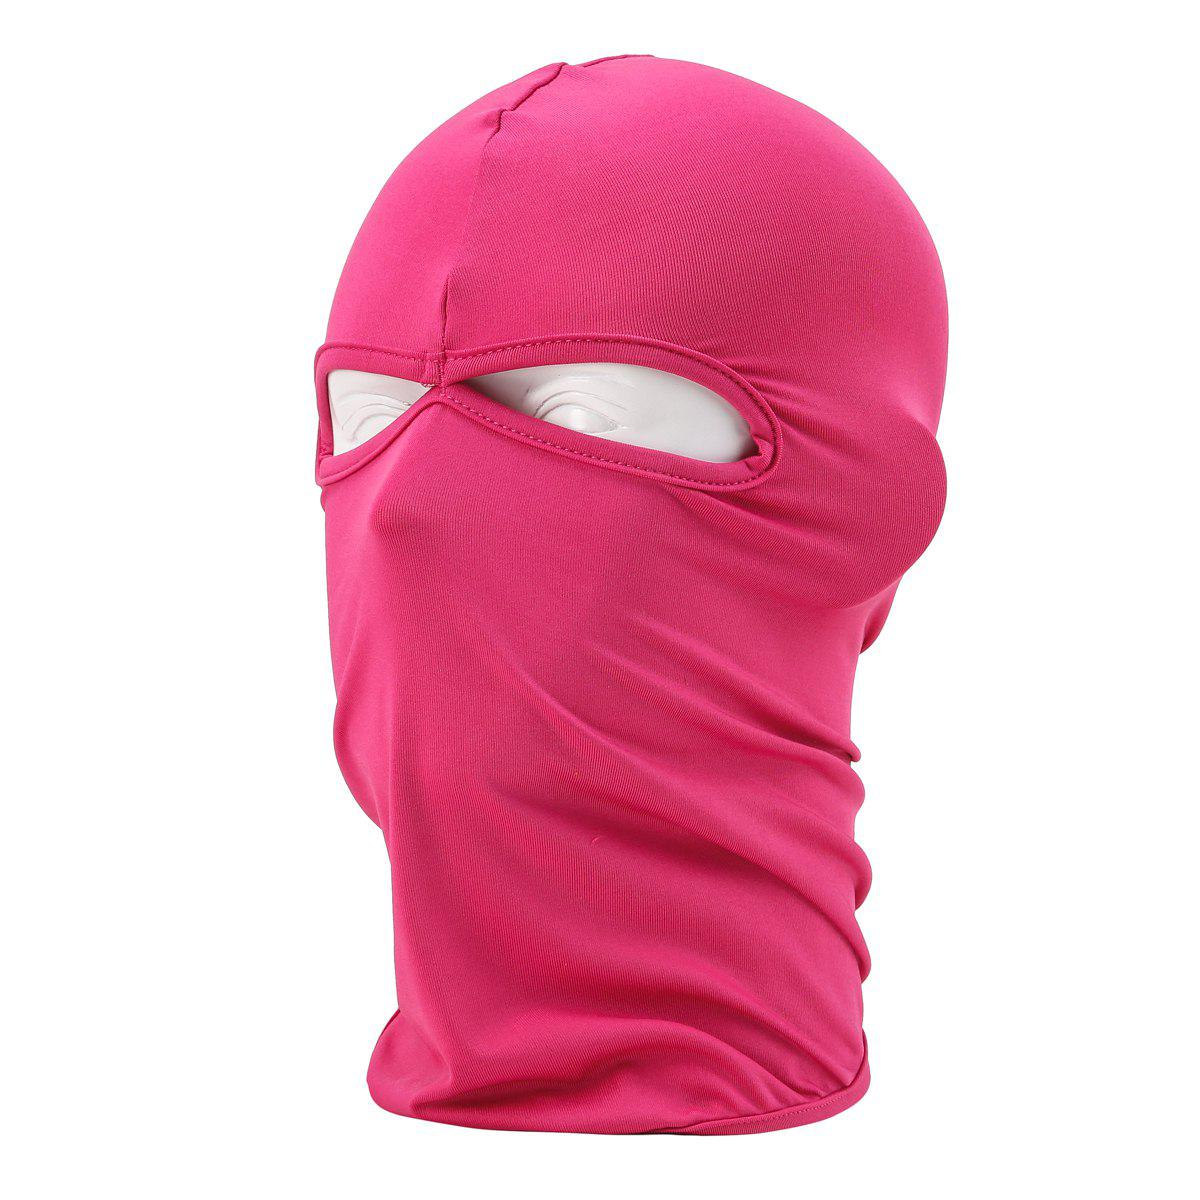 Sun Protective Wrapped Head Cap Mask with Double Orifice for Outdoor Cycling and Fishing etc. - DEEP PINK